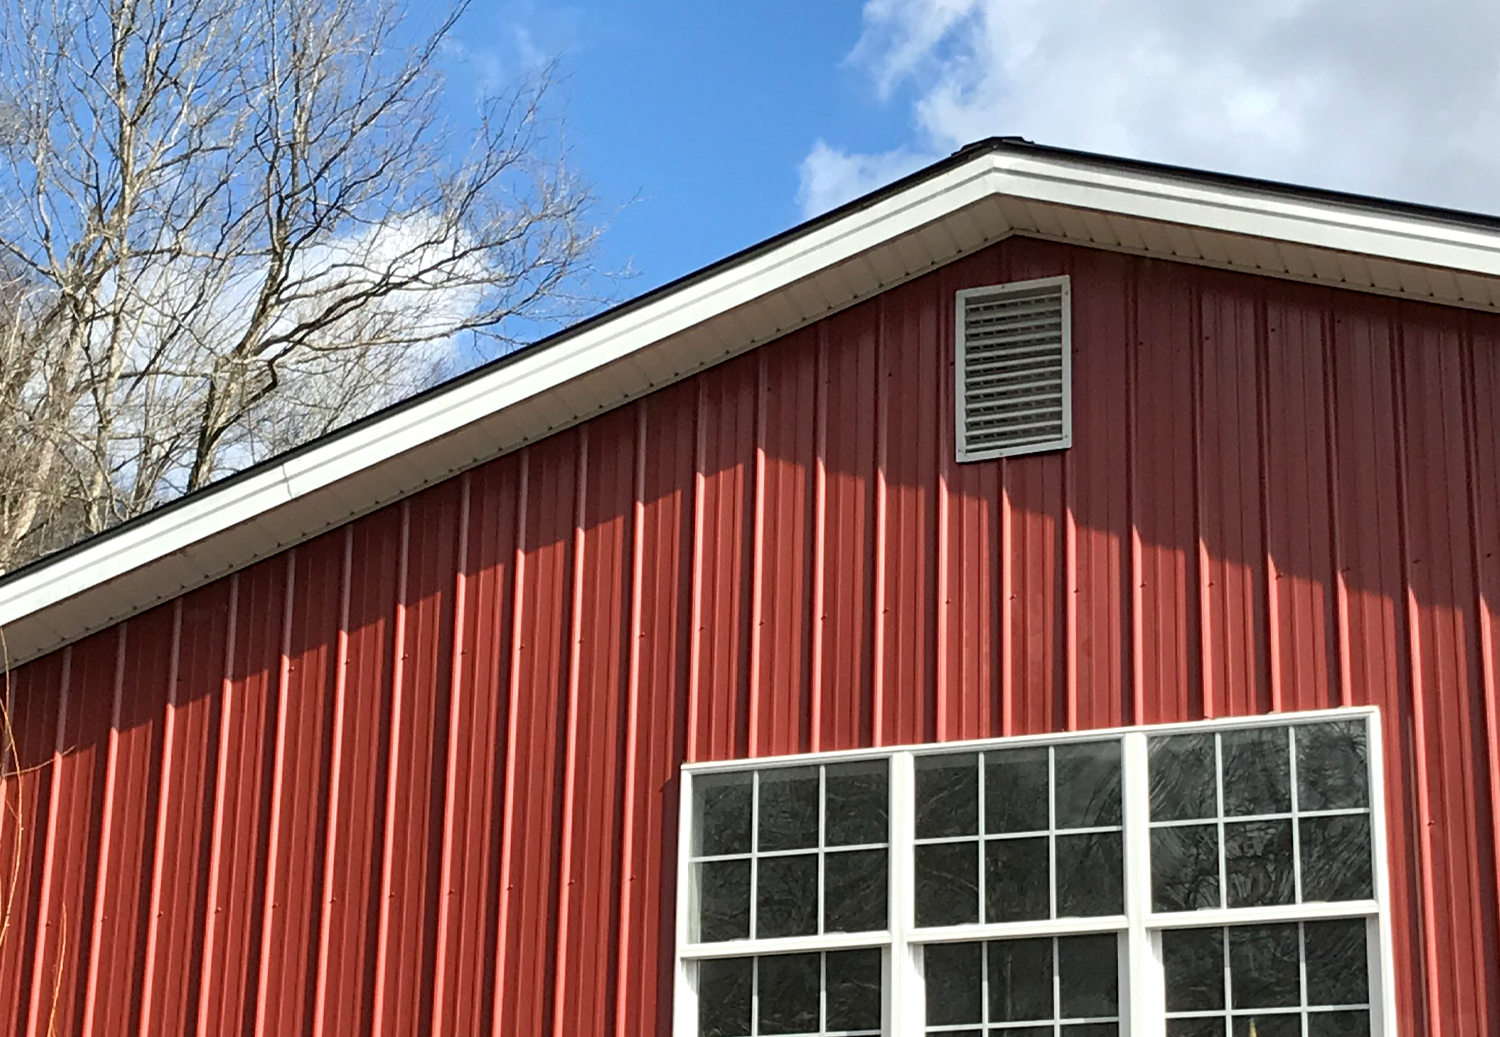 Friends Drift Inn big red barn with spring skies so blue!